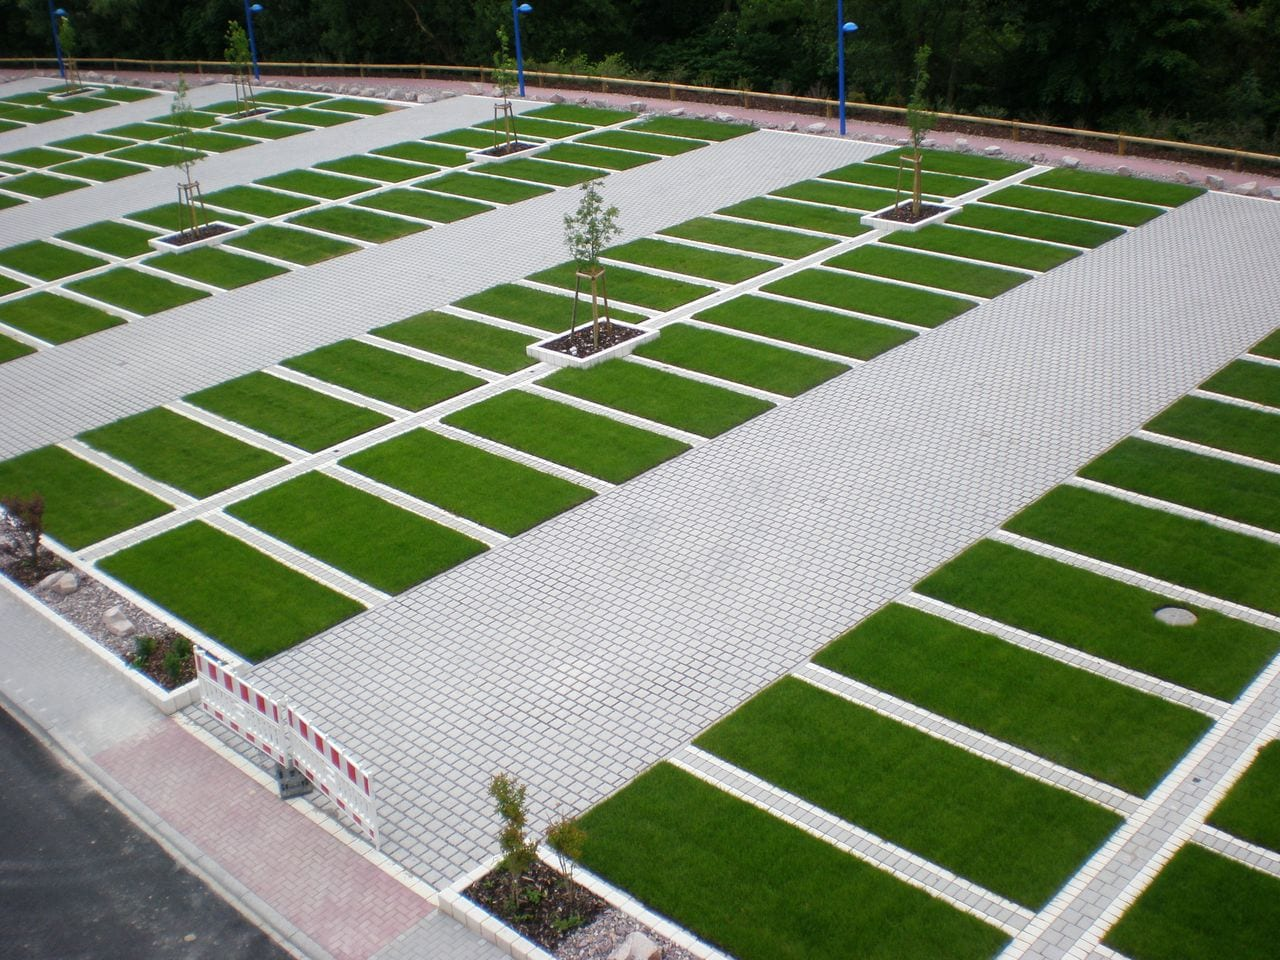 Why Lid Permeable Paving Over Asphalt Paving